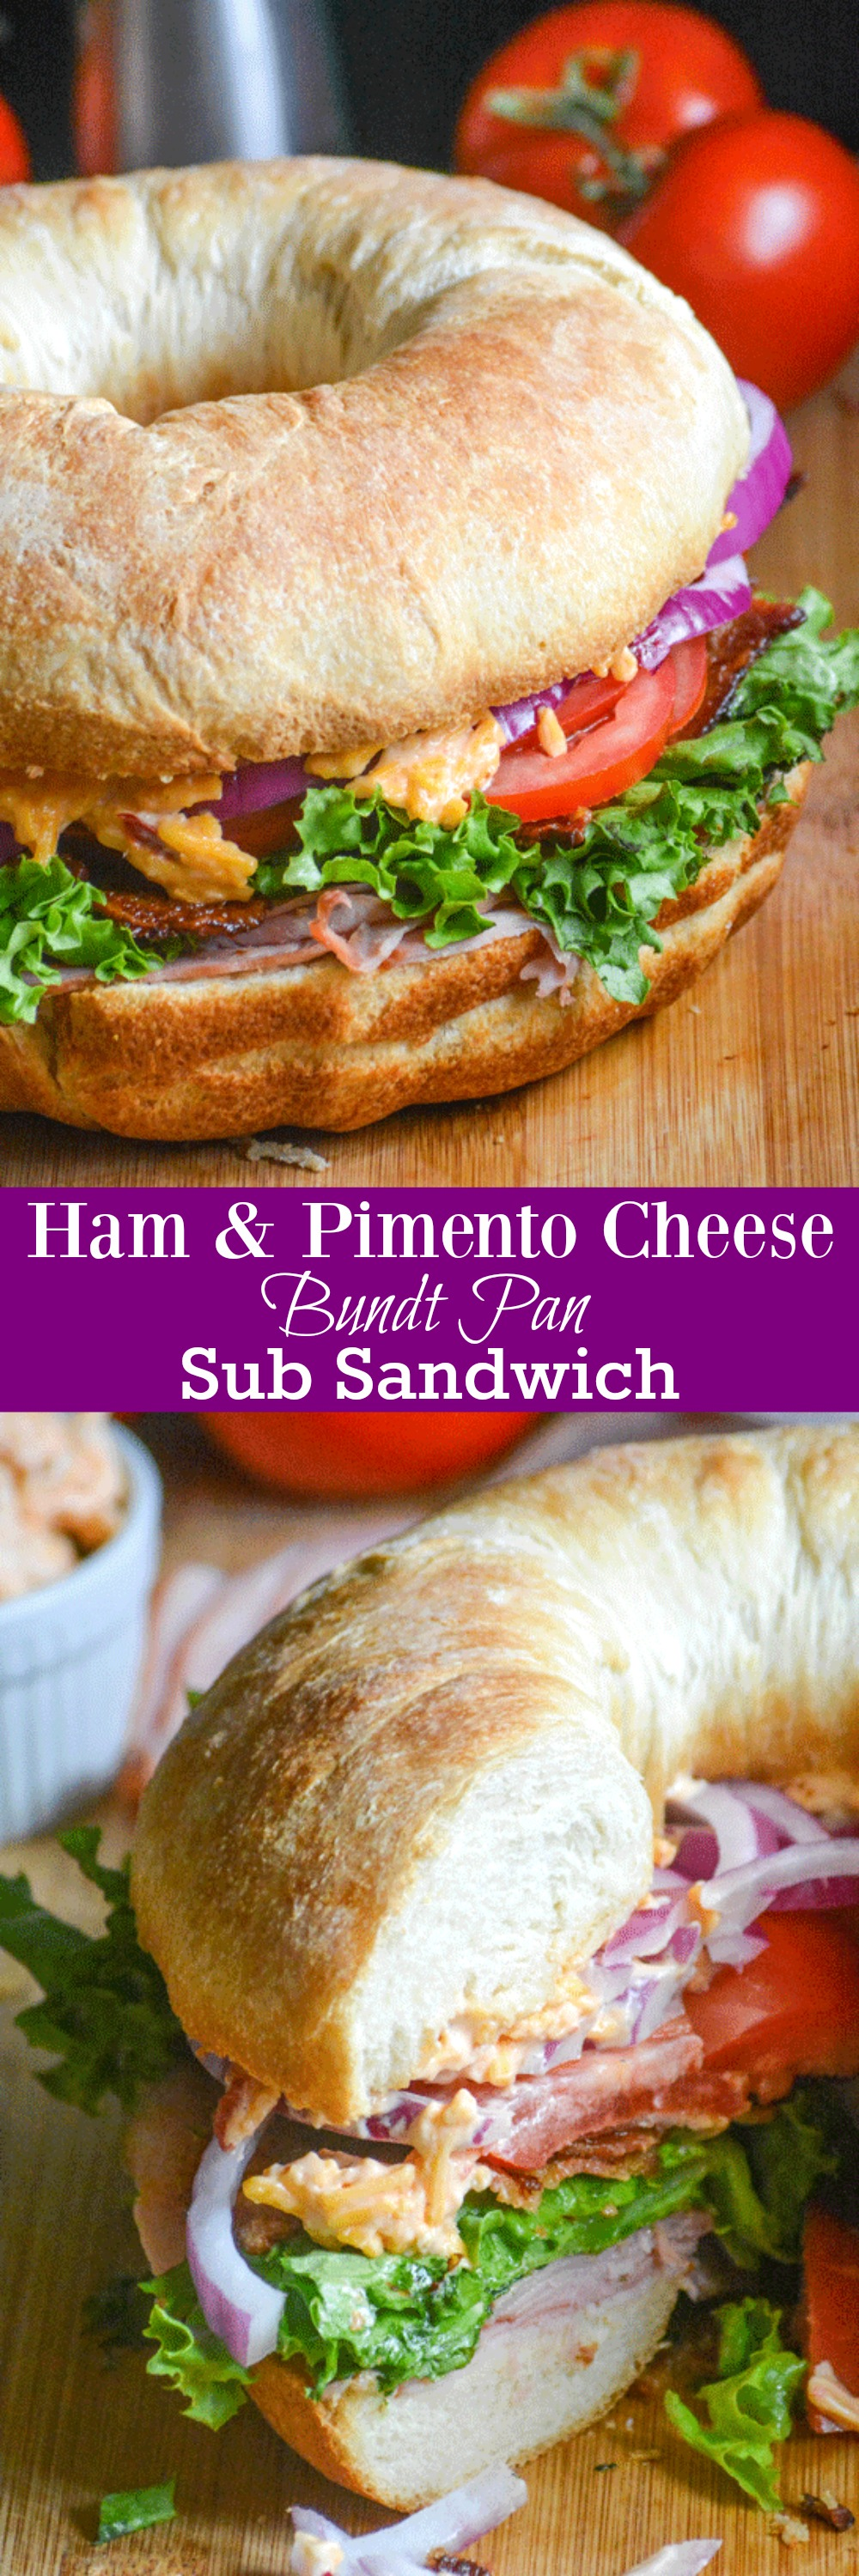 Get as excited about the great food as your are about the Big Game with this fun new way to feed your guests. Our Ham & Pimento Cheese Bundt Pan Sub Sandwich is quick & easy making it a perfect party appetizer or lunch. It's a yummy win for everyone!